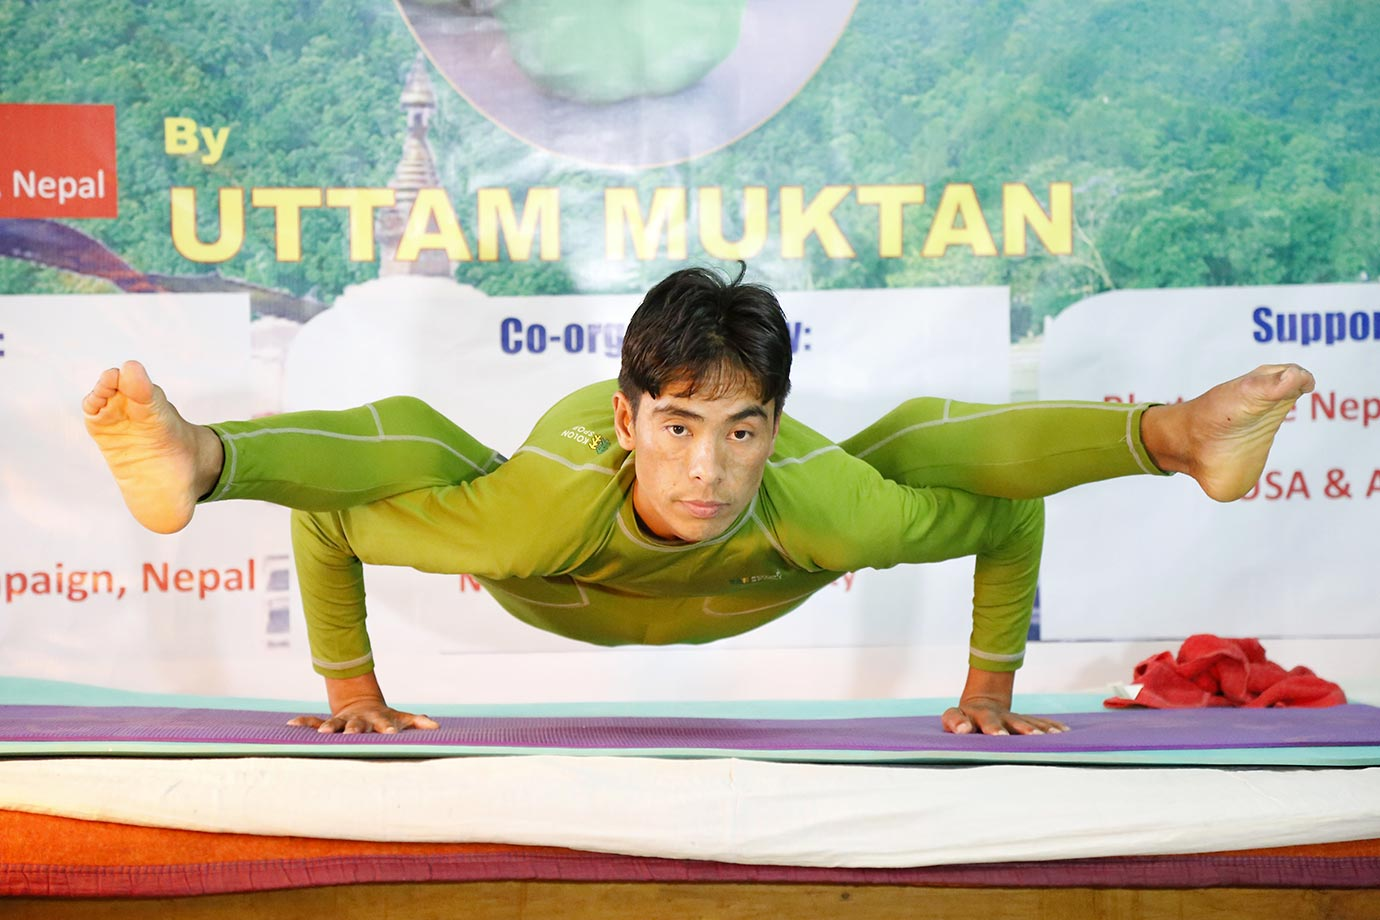 Nepalese Uttam Moktan performs yoga to challenge the Guinness World Record of the longest yoga marathon. He performed various yoga positions for 50 hours and 15 minutes to break the previous record of 40 hours, 15 minutes held by Indian yoga teacher Yogaraj C.P.